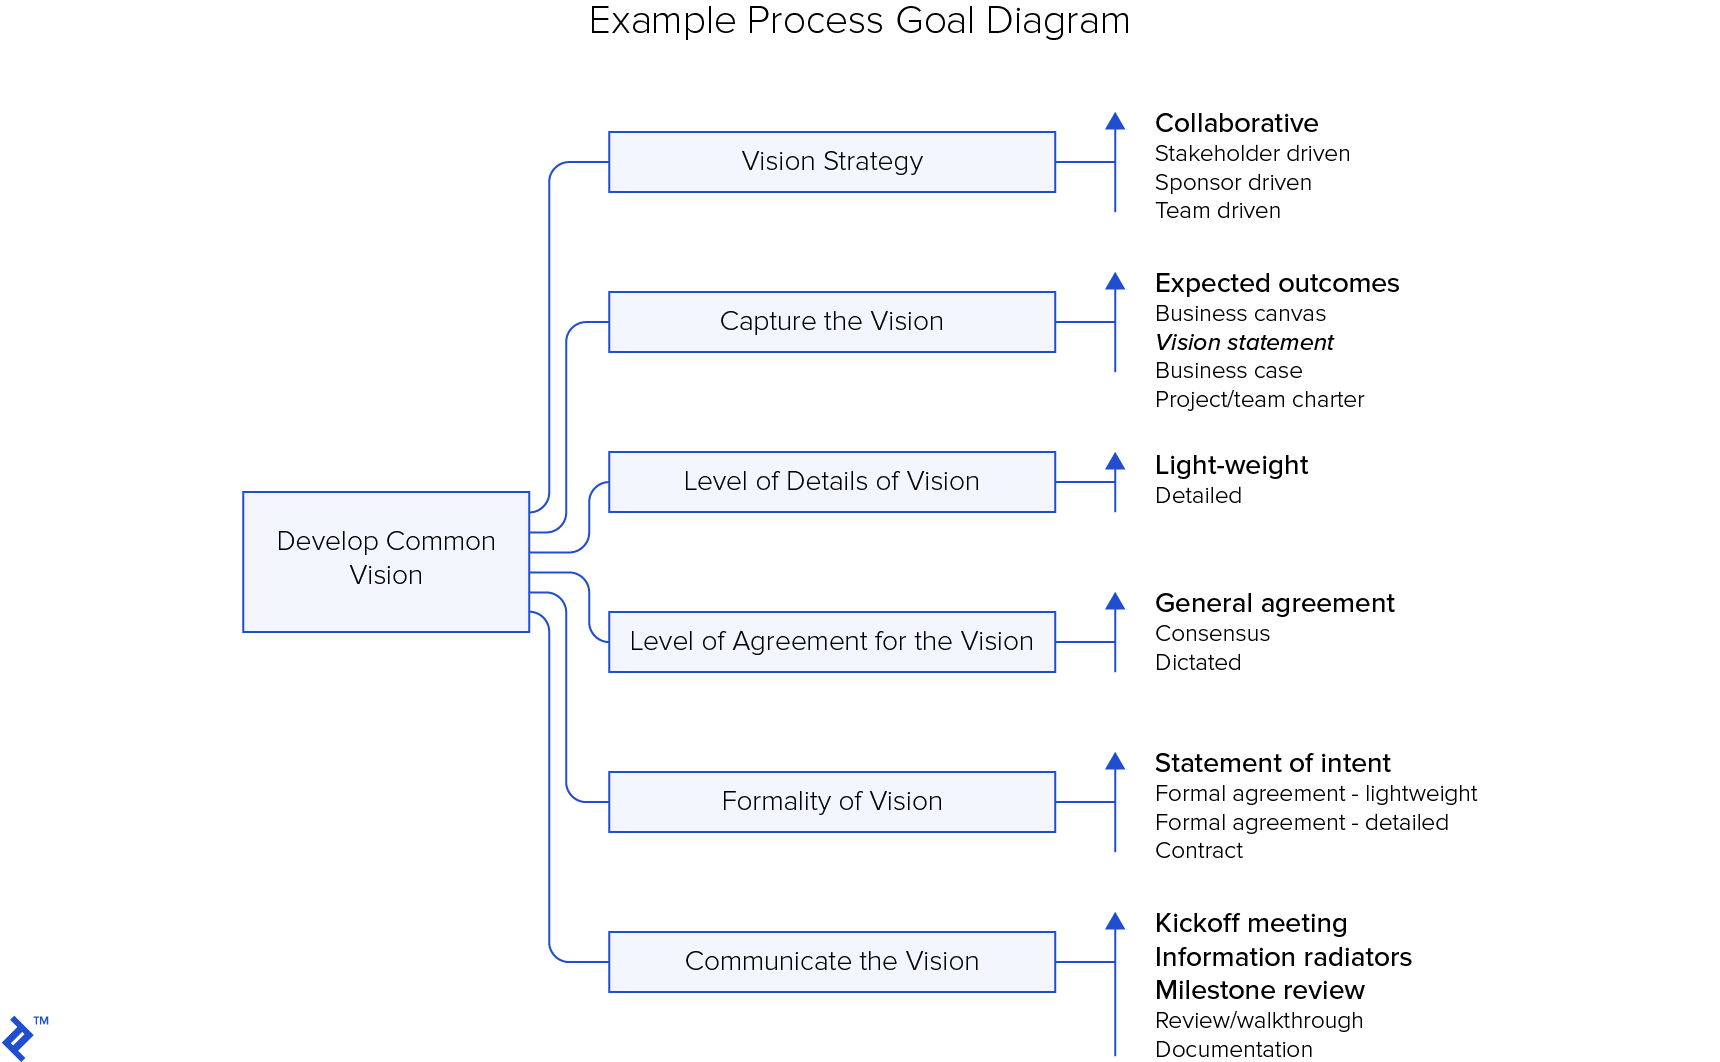 Disciplined agile delivery (DAD) example process goal diagram